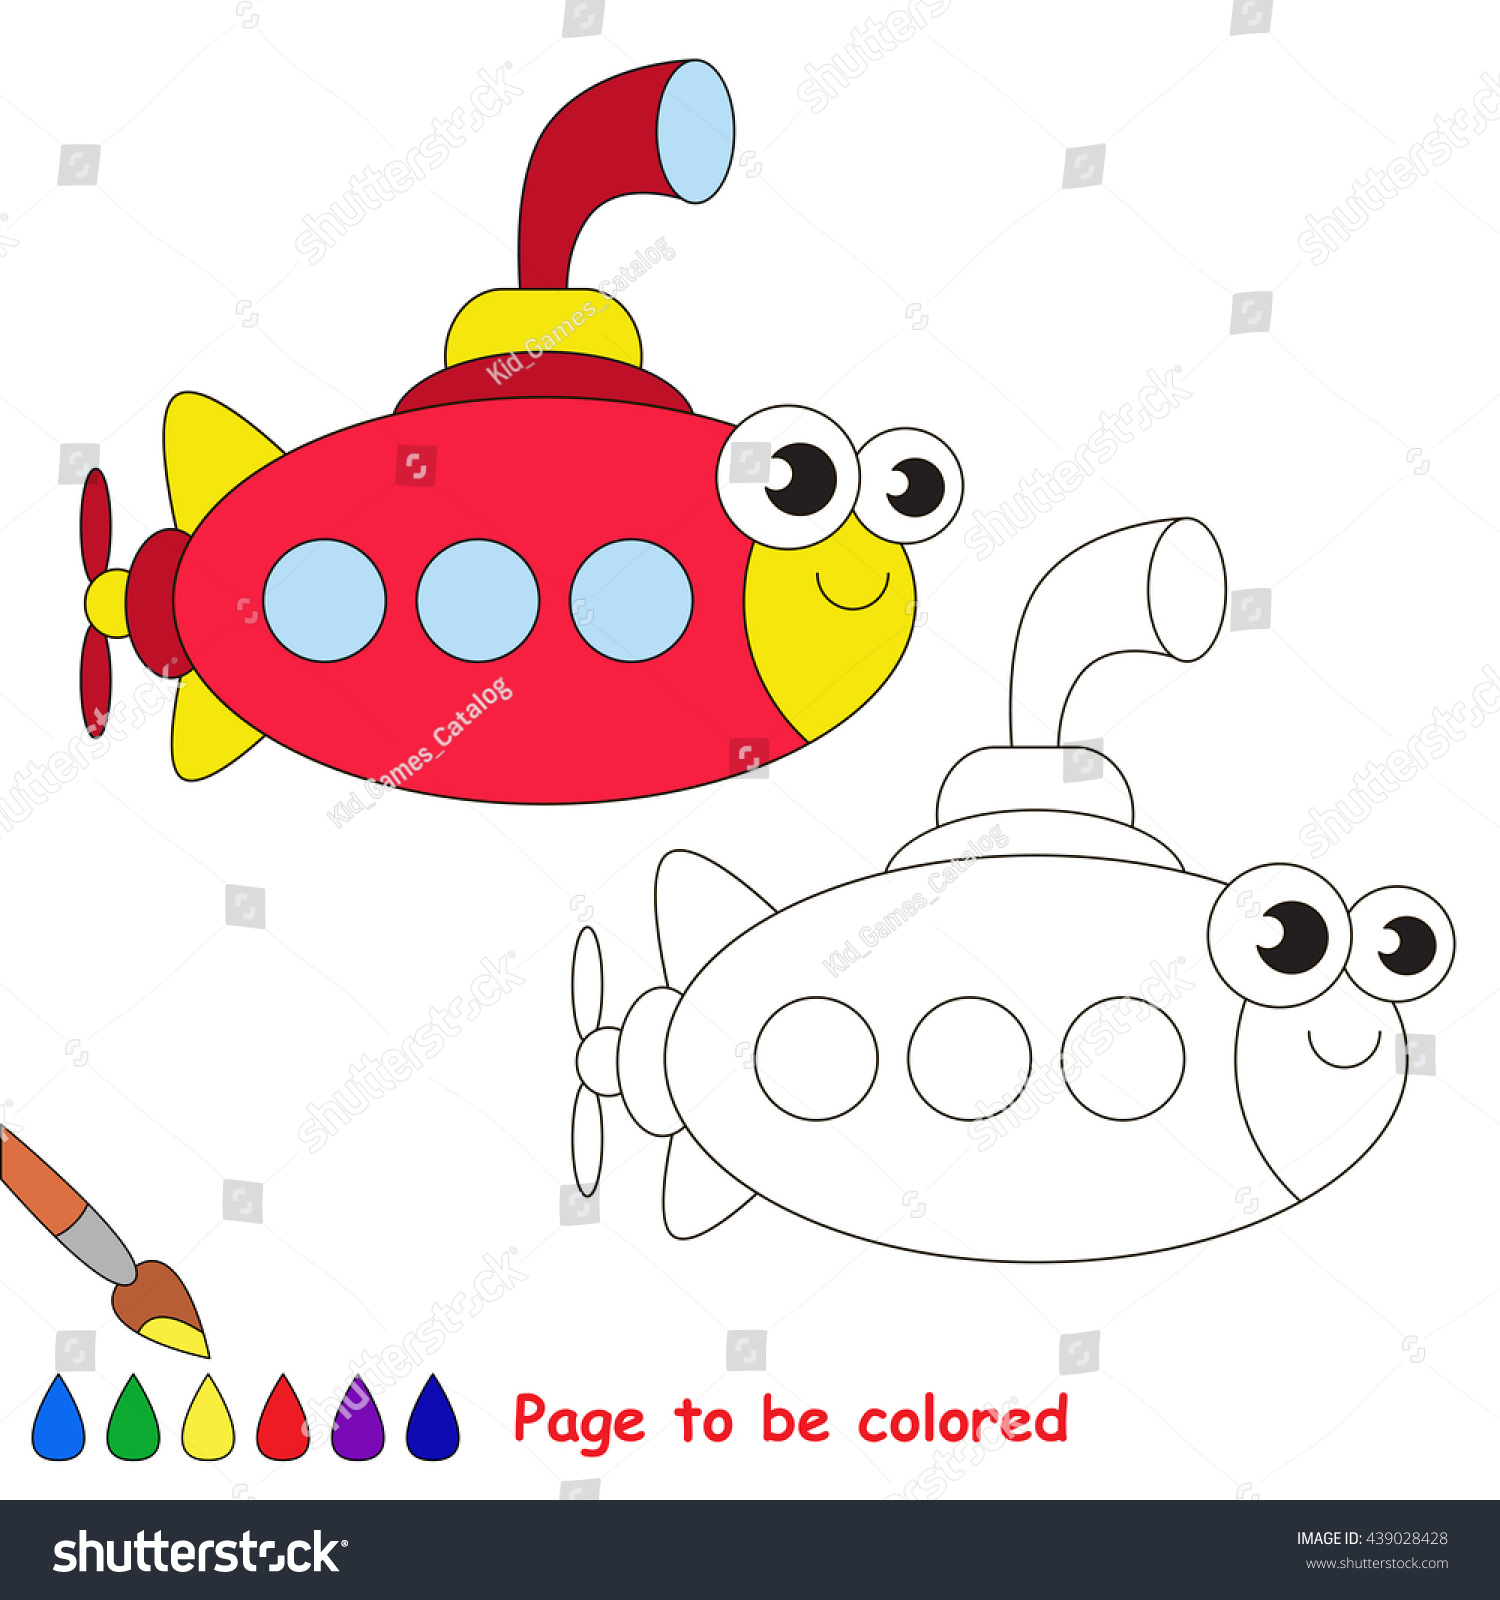 Red Submarine Be Colored Coloring Book Stock Vector HD (Royalty Free ...